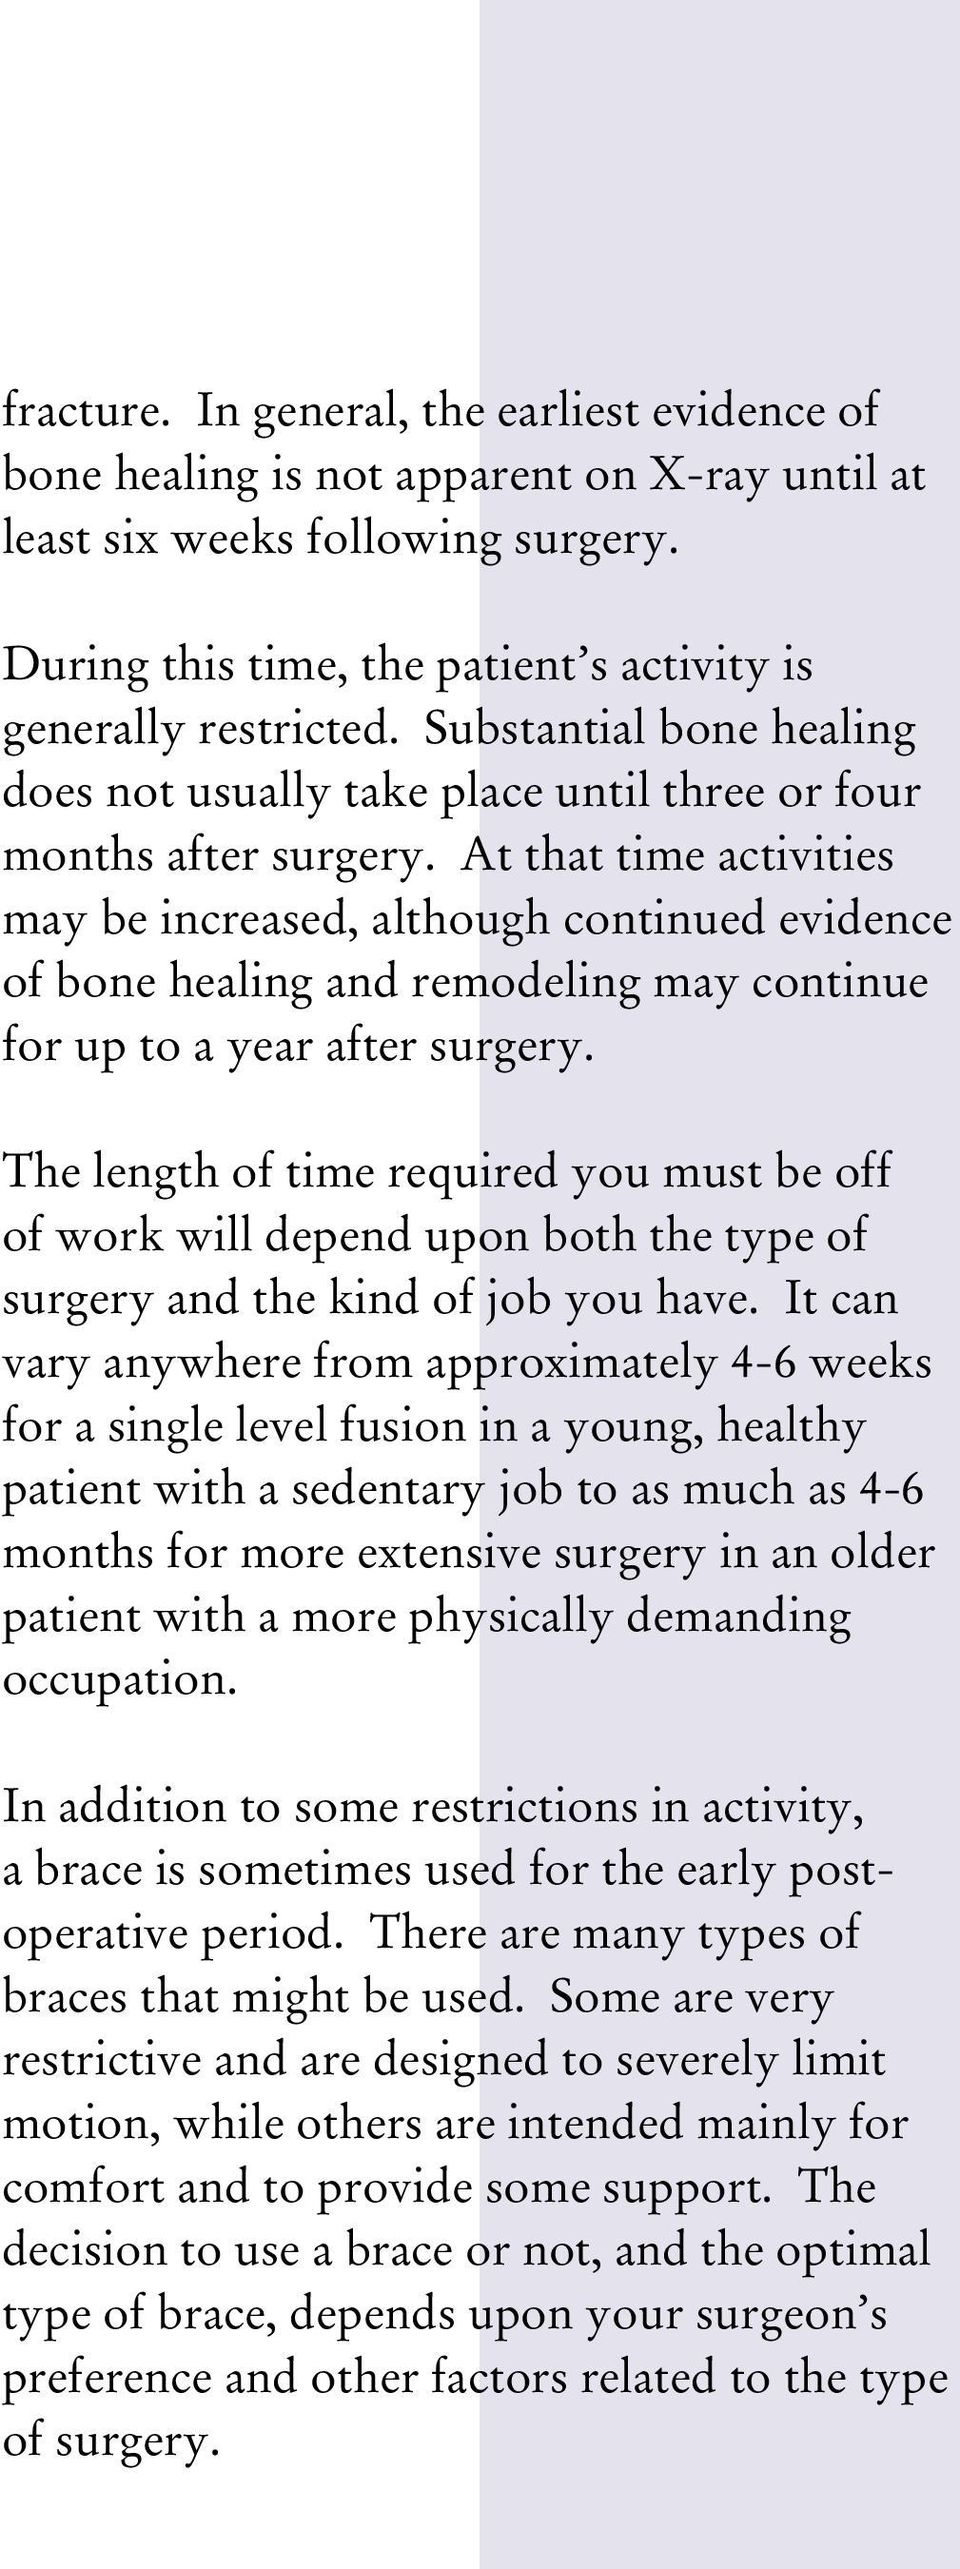 At that time activities may be increased, although continued evidence of bone healing and remodeling may continue for up to a year after surgery.